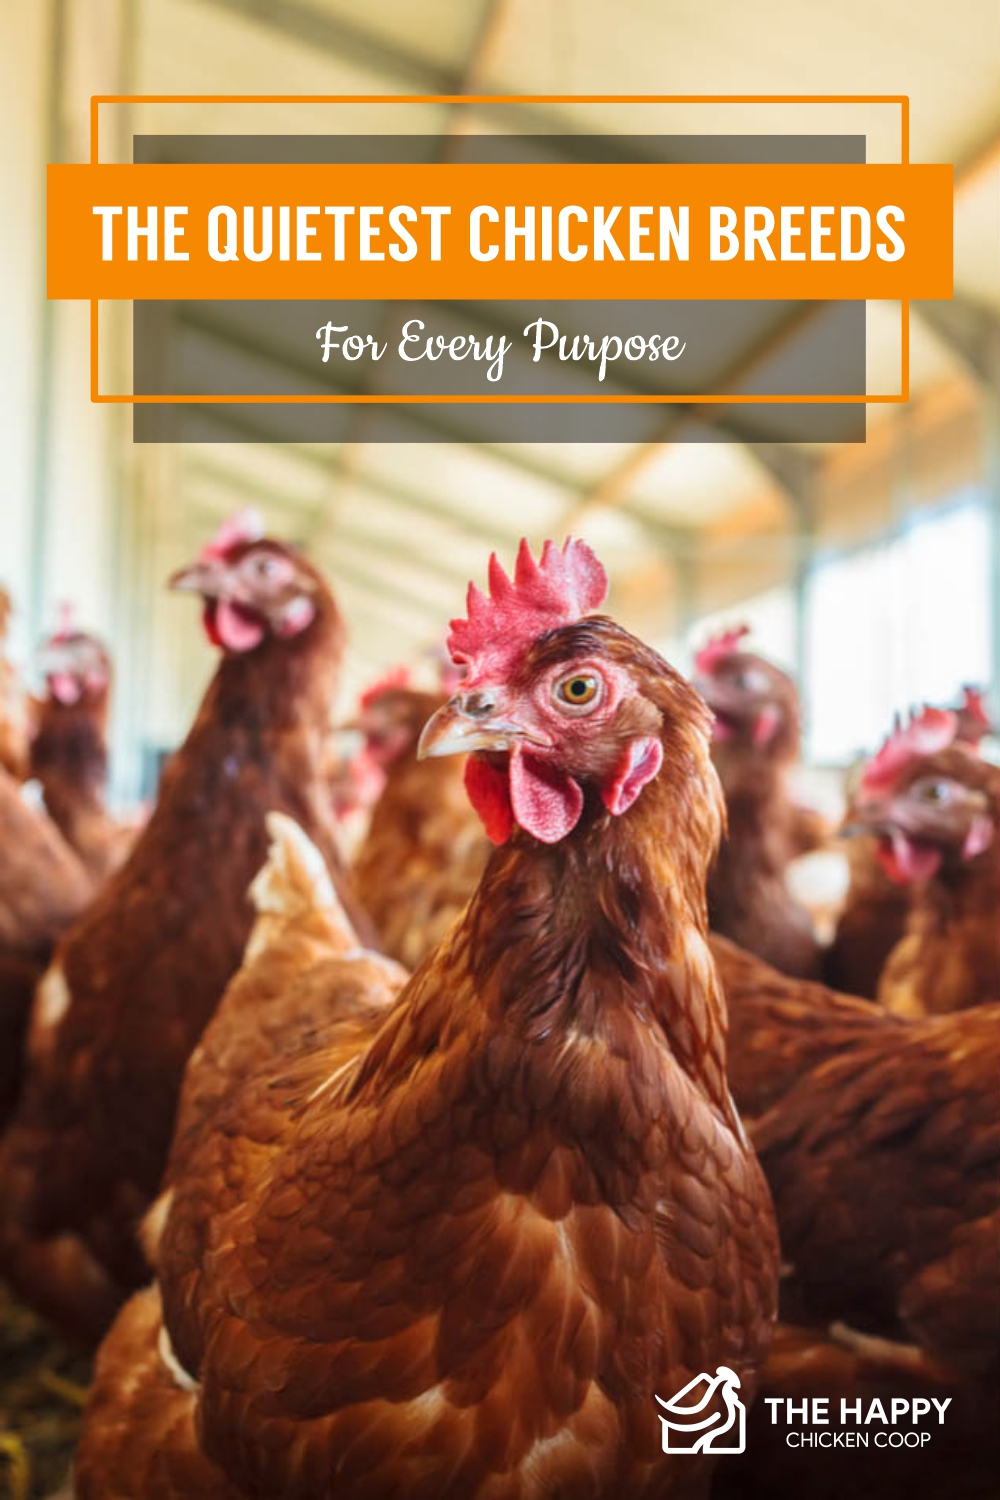 The Quietest Chicken Breeds For Every Purpose